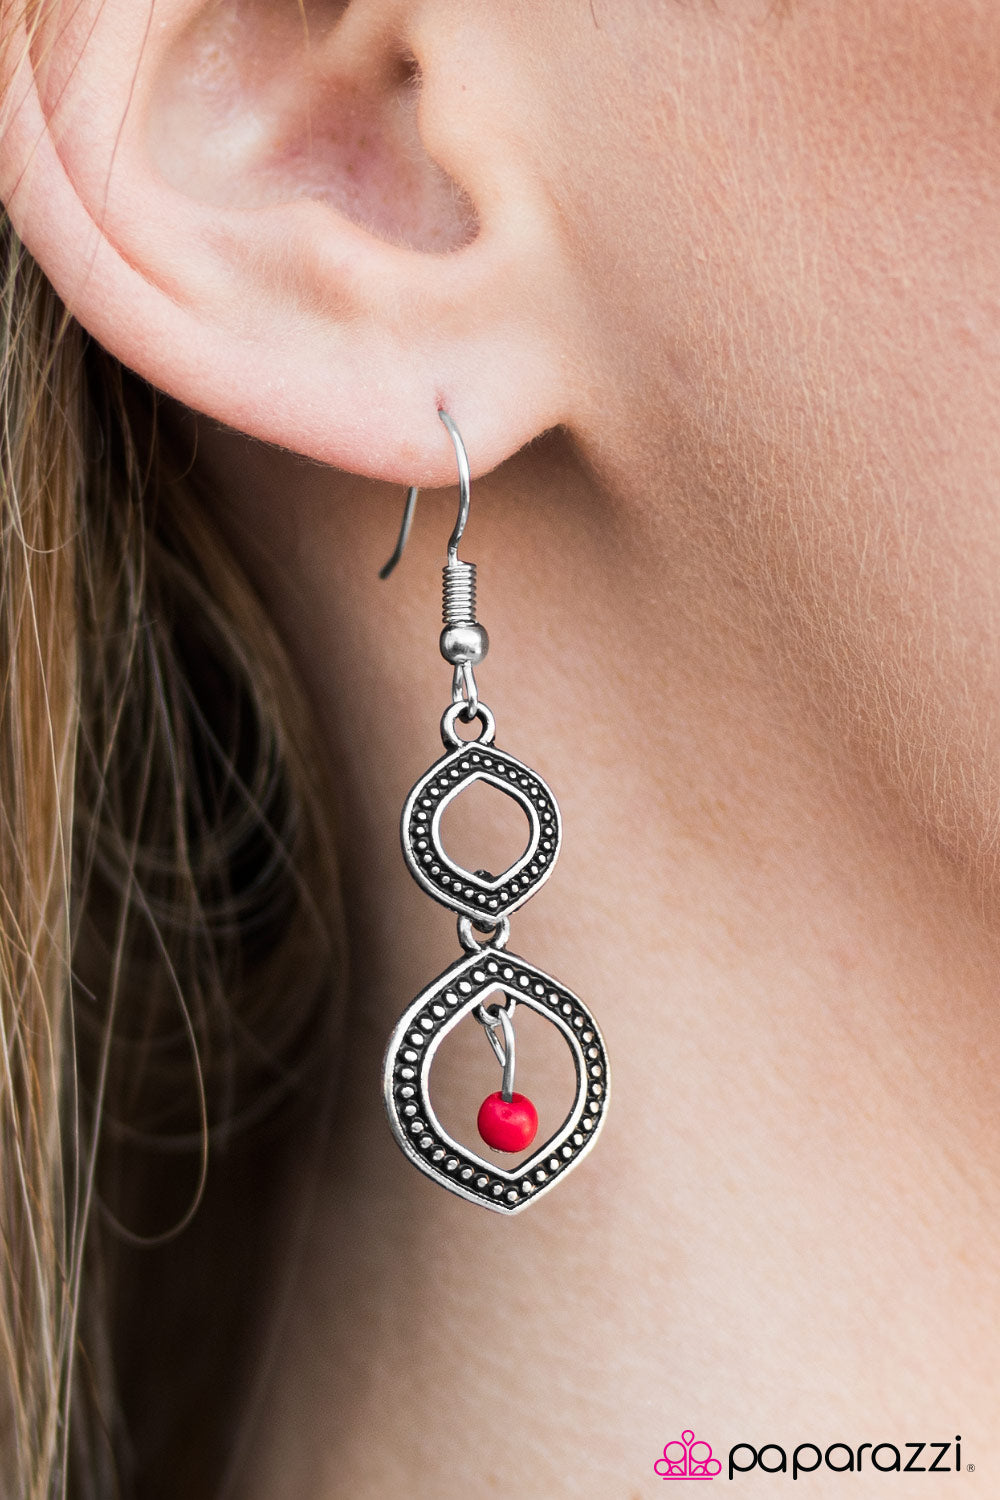 Dancing Genie - Red - Paparazzi earrings